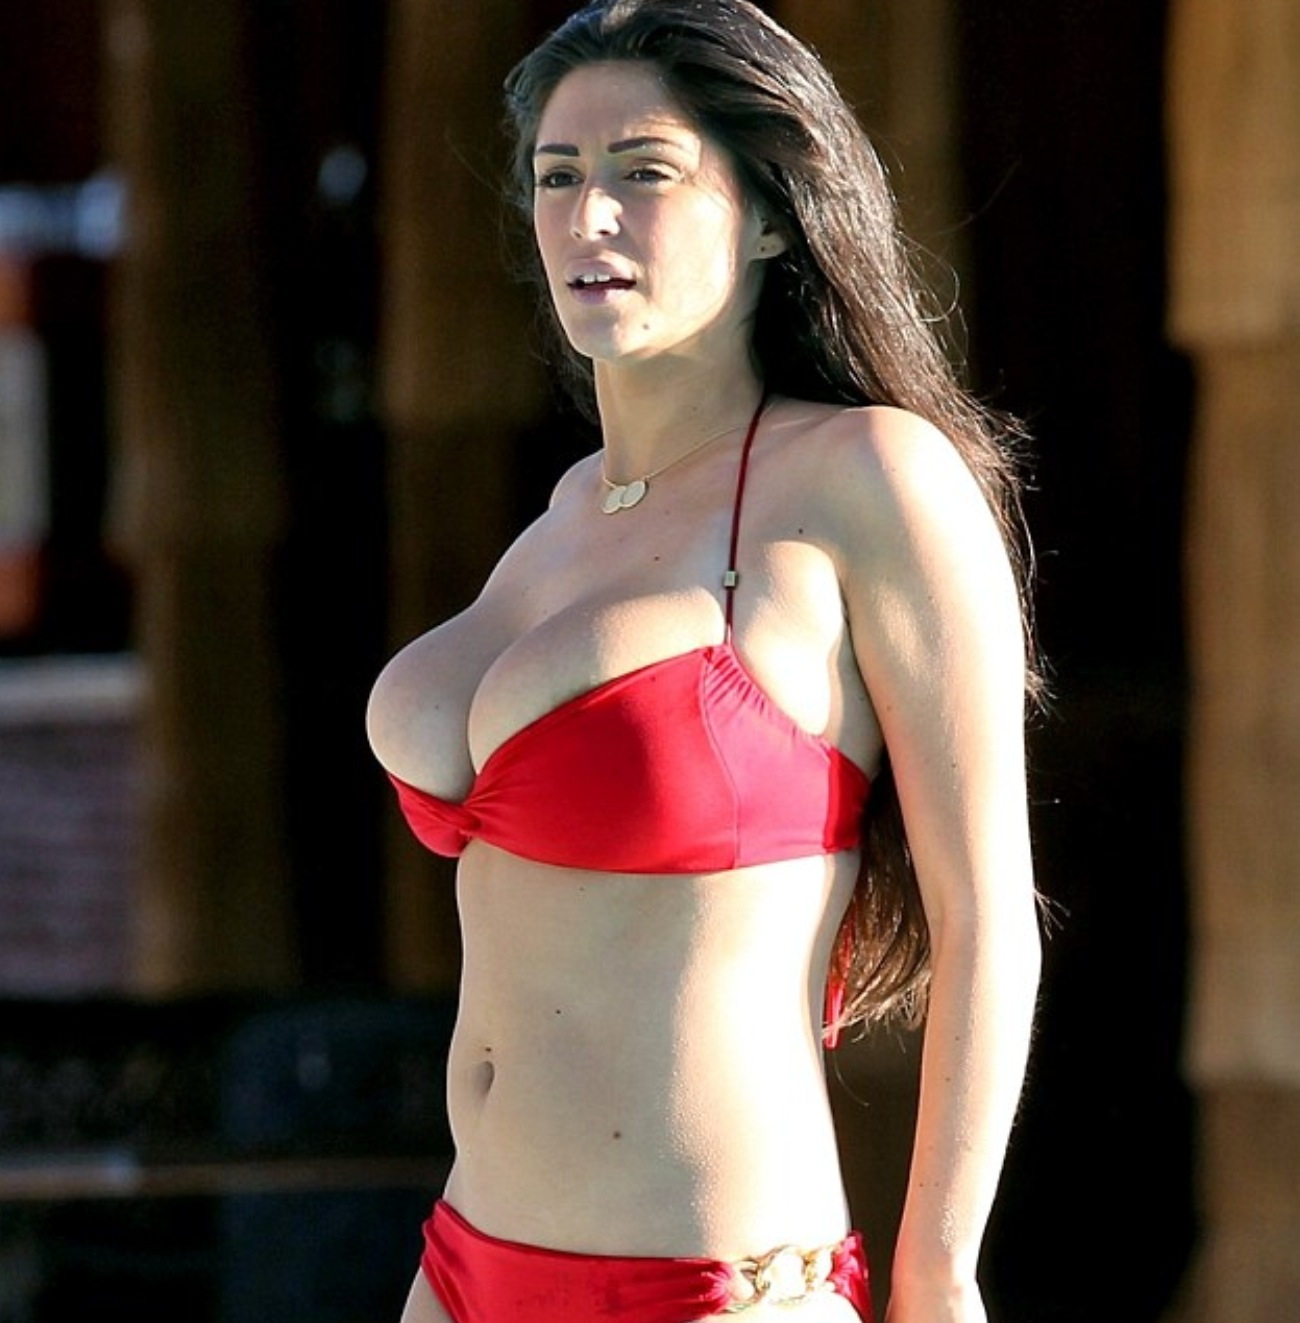 Hot Casey Batchelor nudes (58 foto and video), Topless, Bikini, Selfie, lingerie 2006